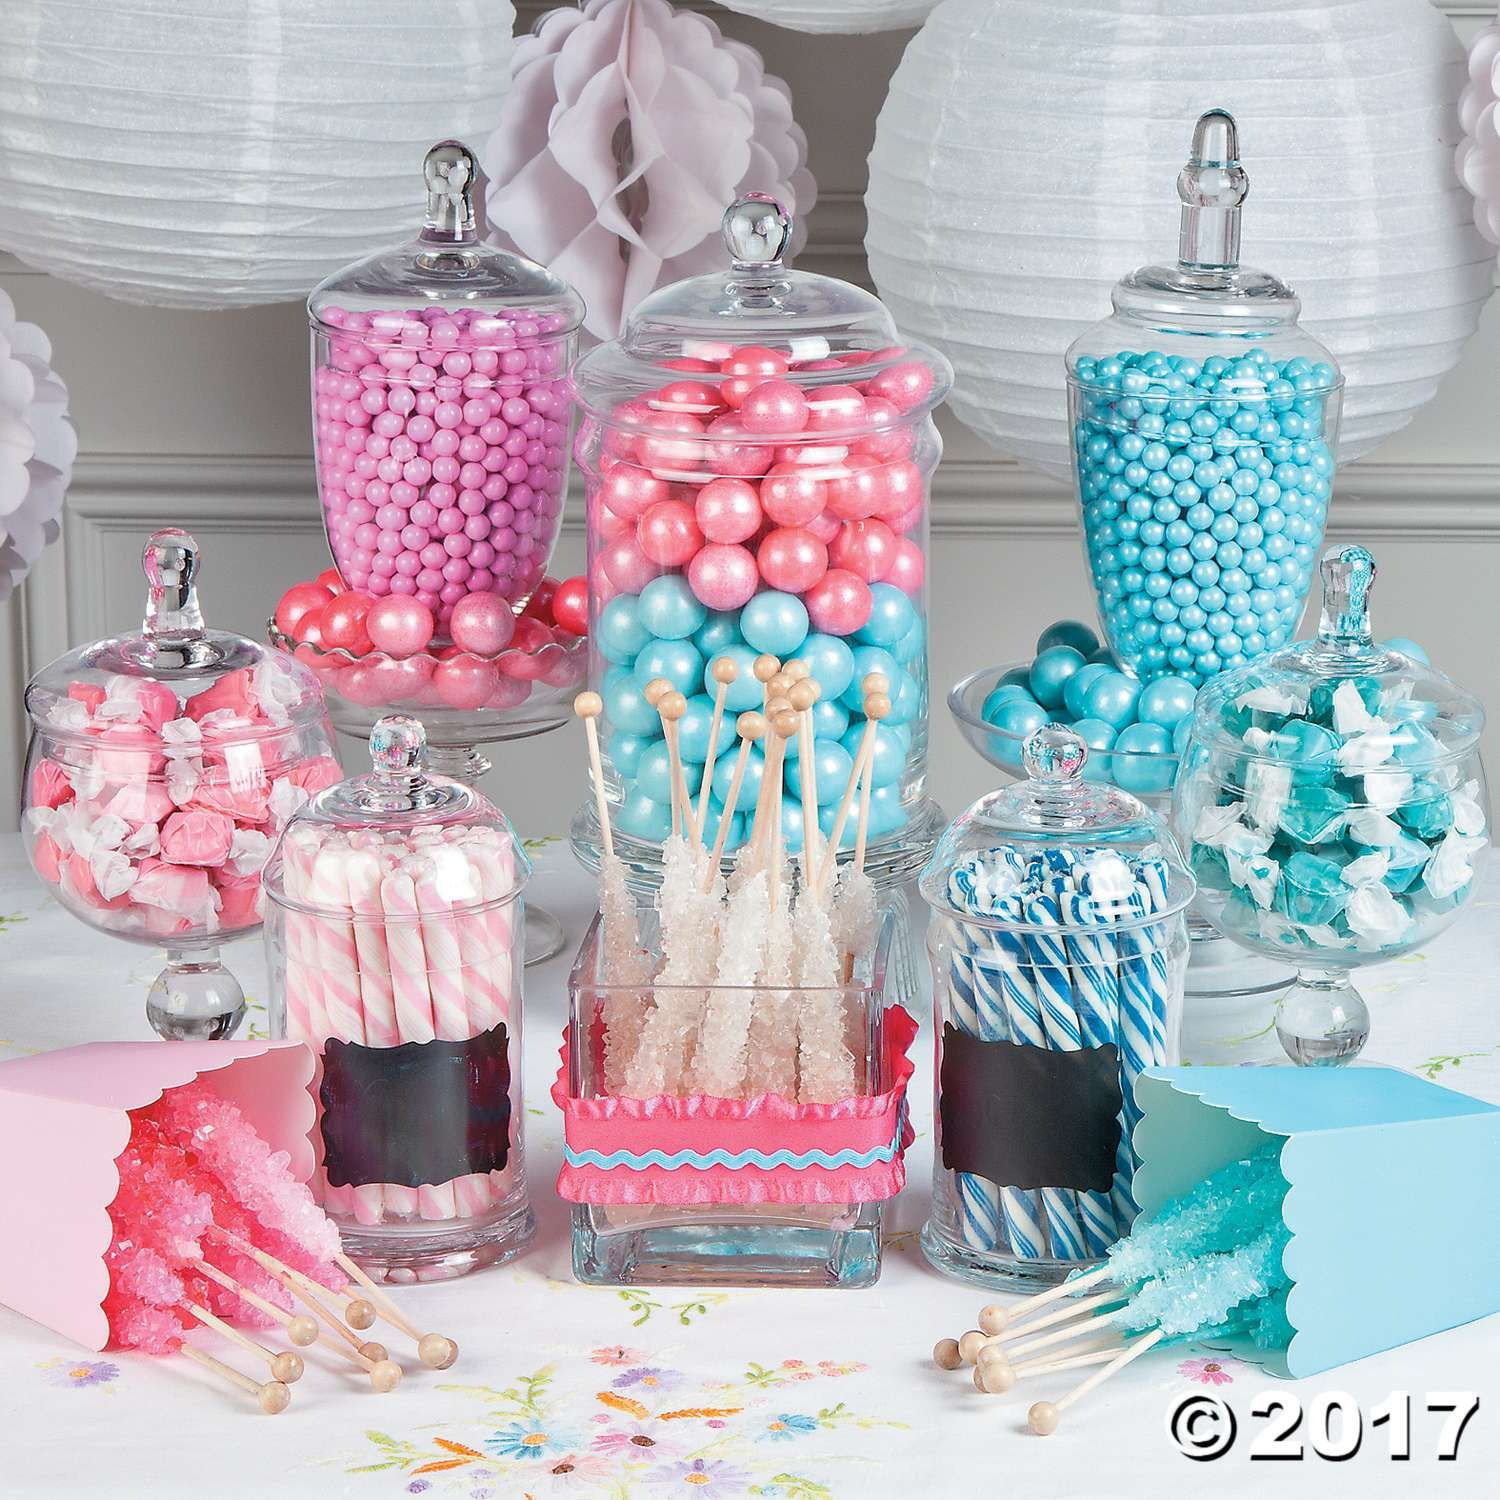 Ideas For A Gender Reveal Party  Gender Reveal Party 42 mybabydoo